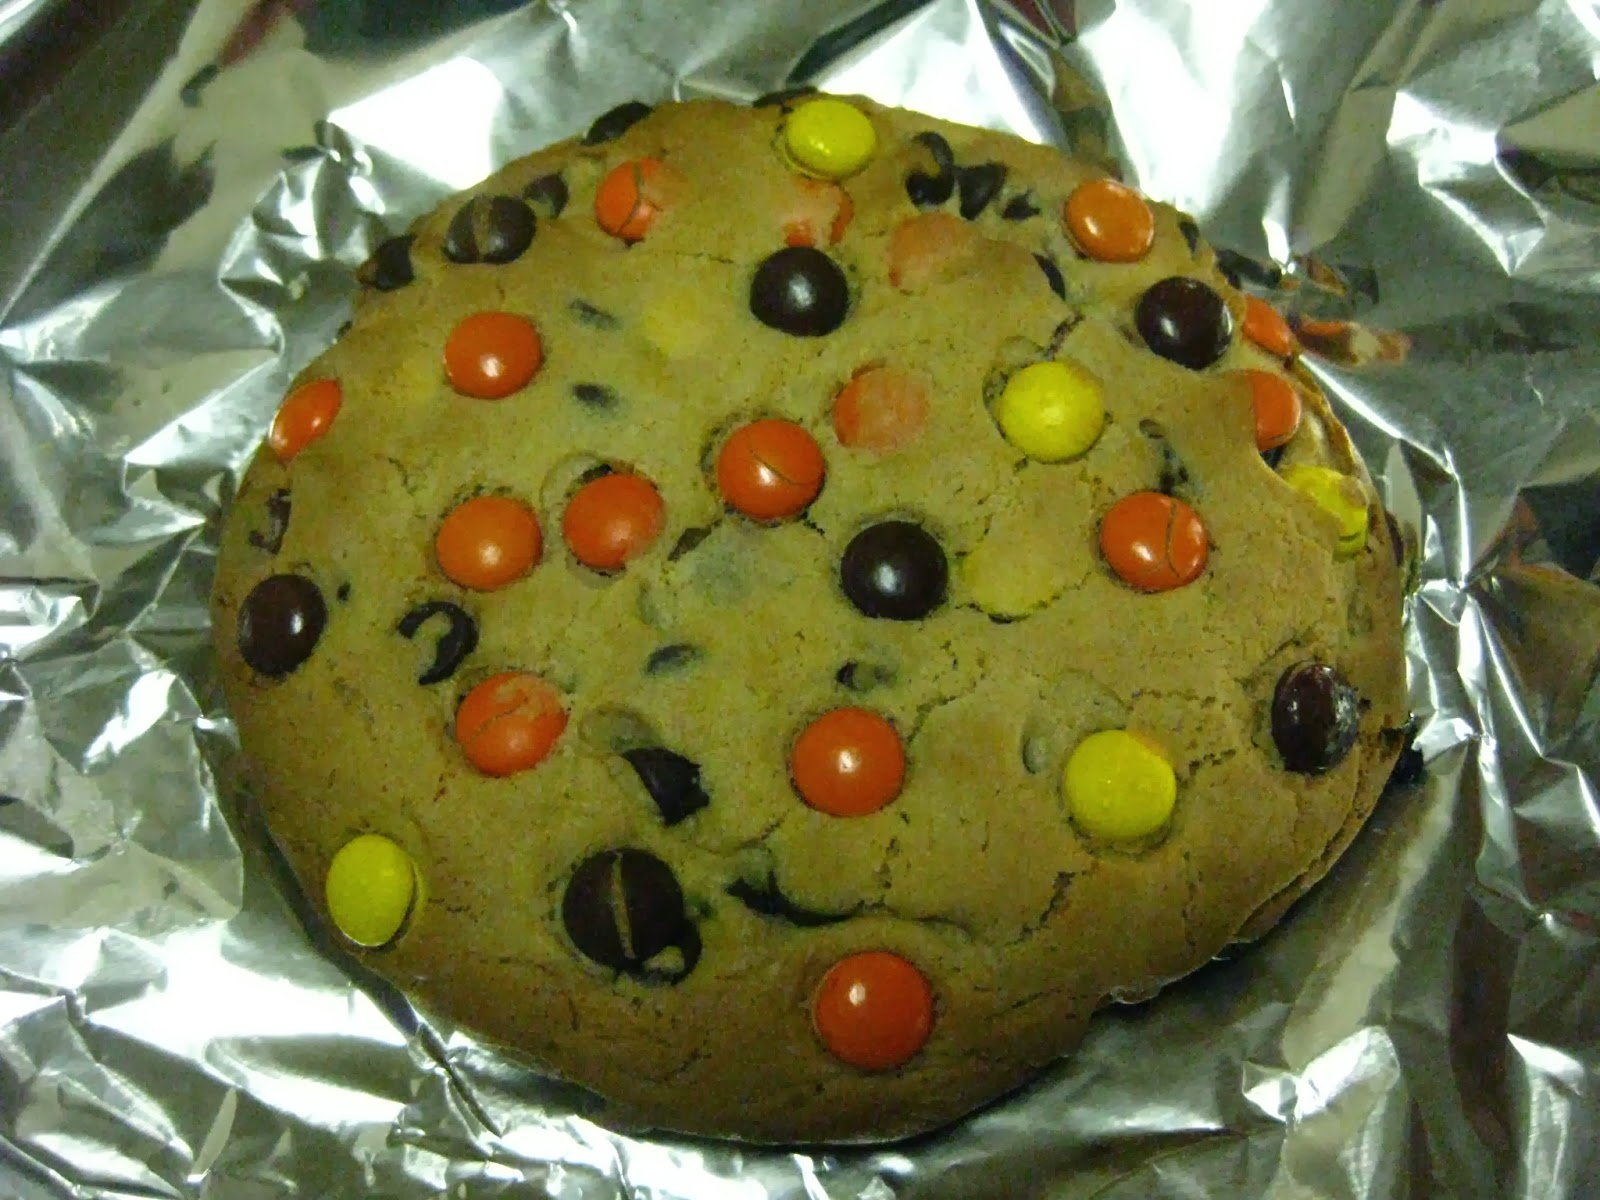 The Baking Bluenoser: Giant Reese's Pieces Cookie for One